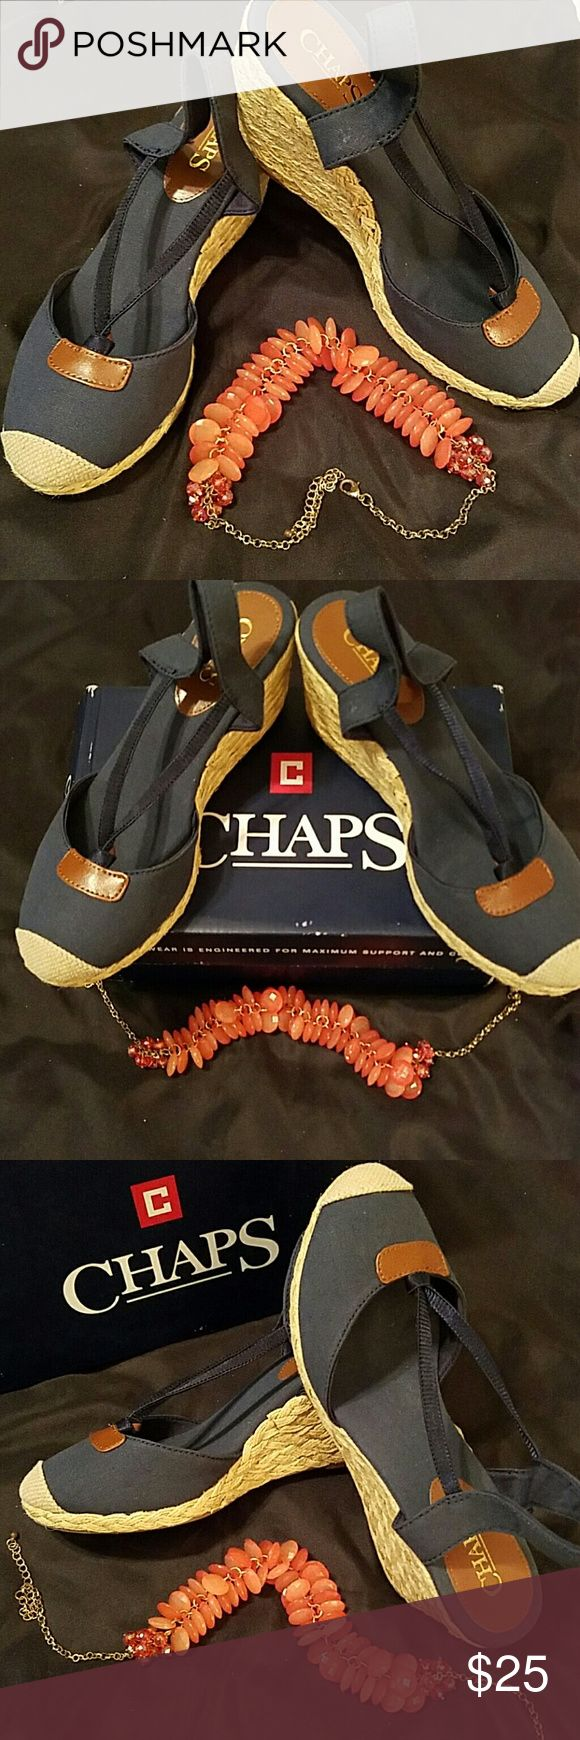 CHAPS NAVY WEDGE SLINGBACK SHOES (NEW) So comfy navy canvas woven espadrilles wedge shoes. Chaps Shoes Wedges